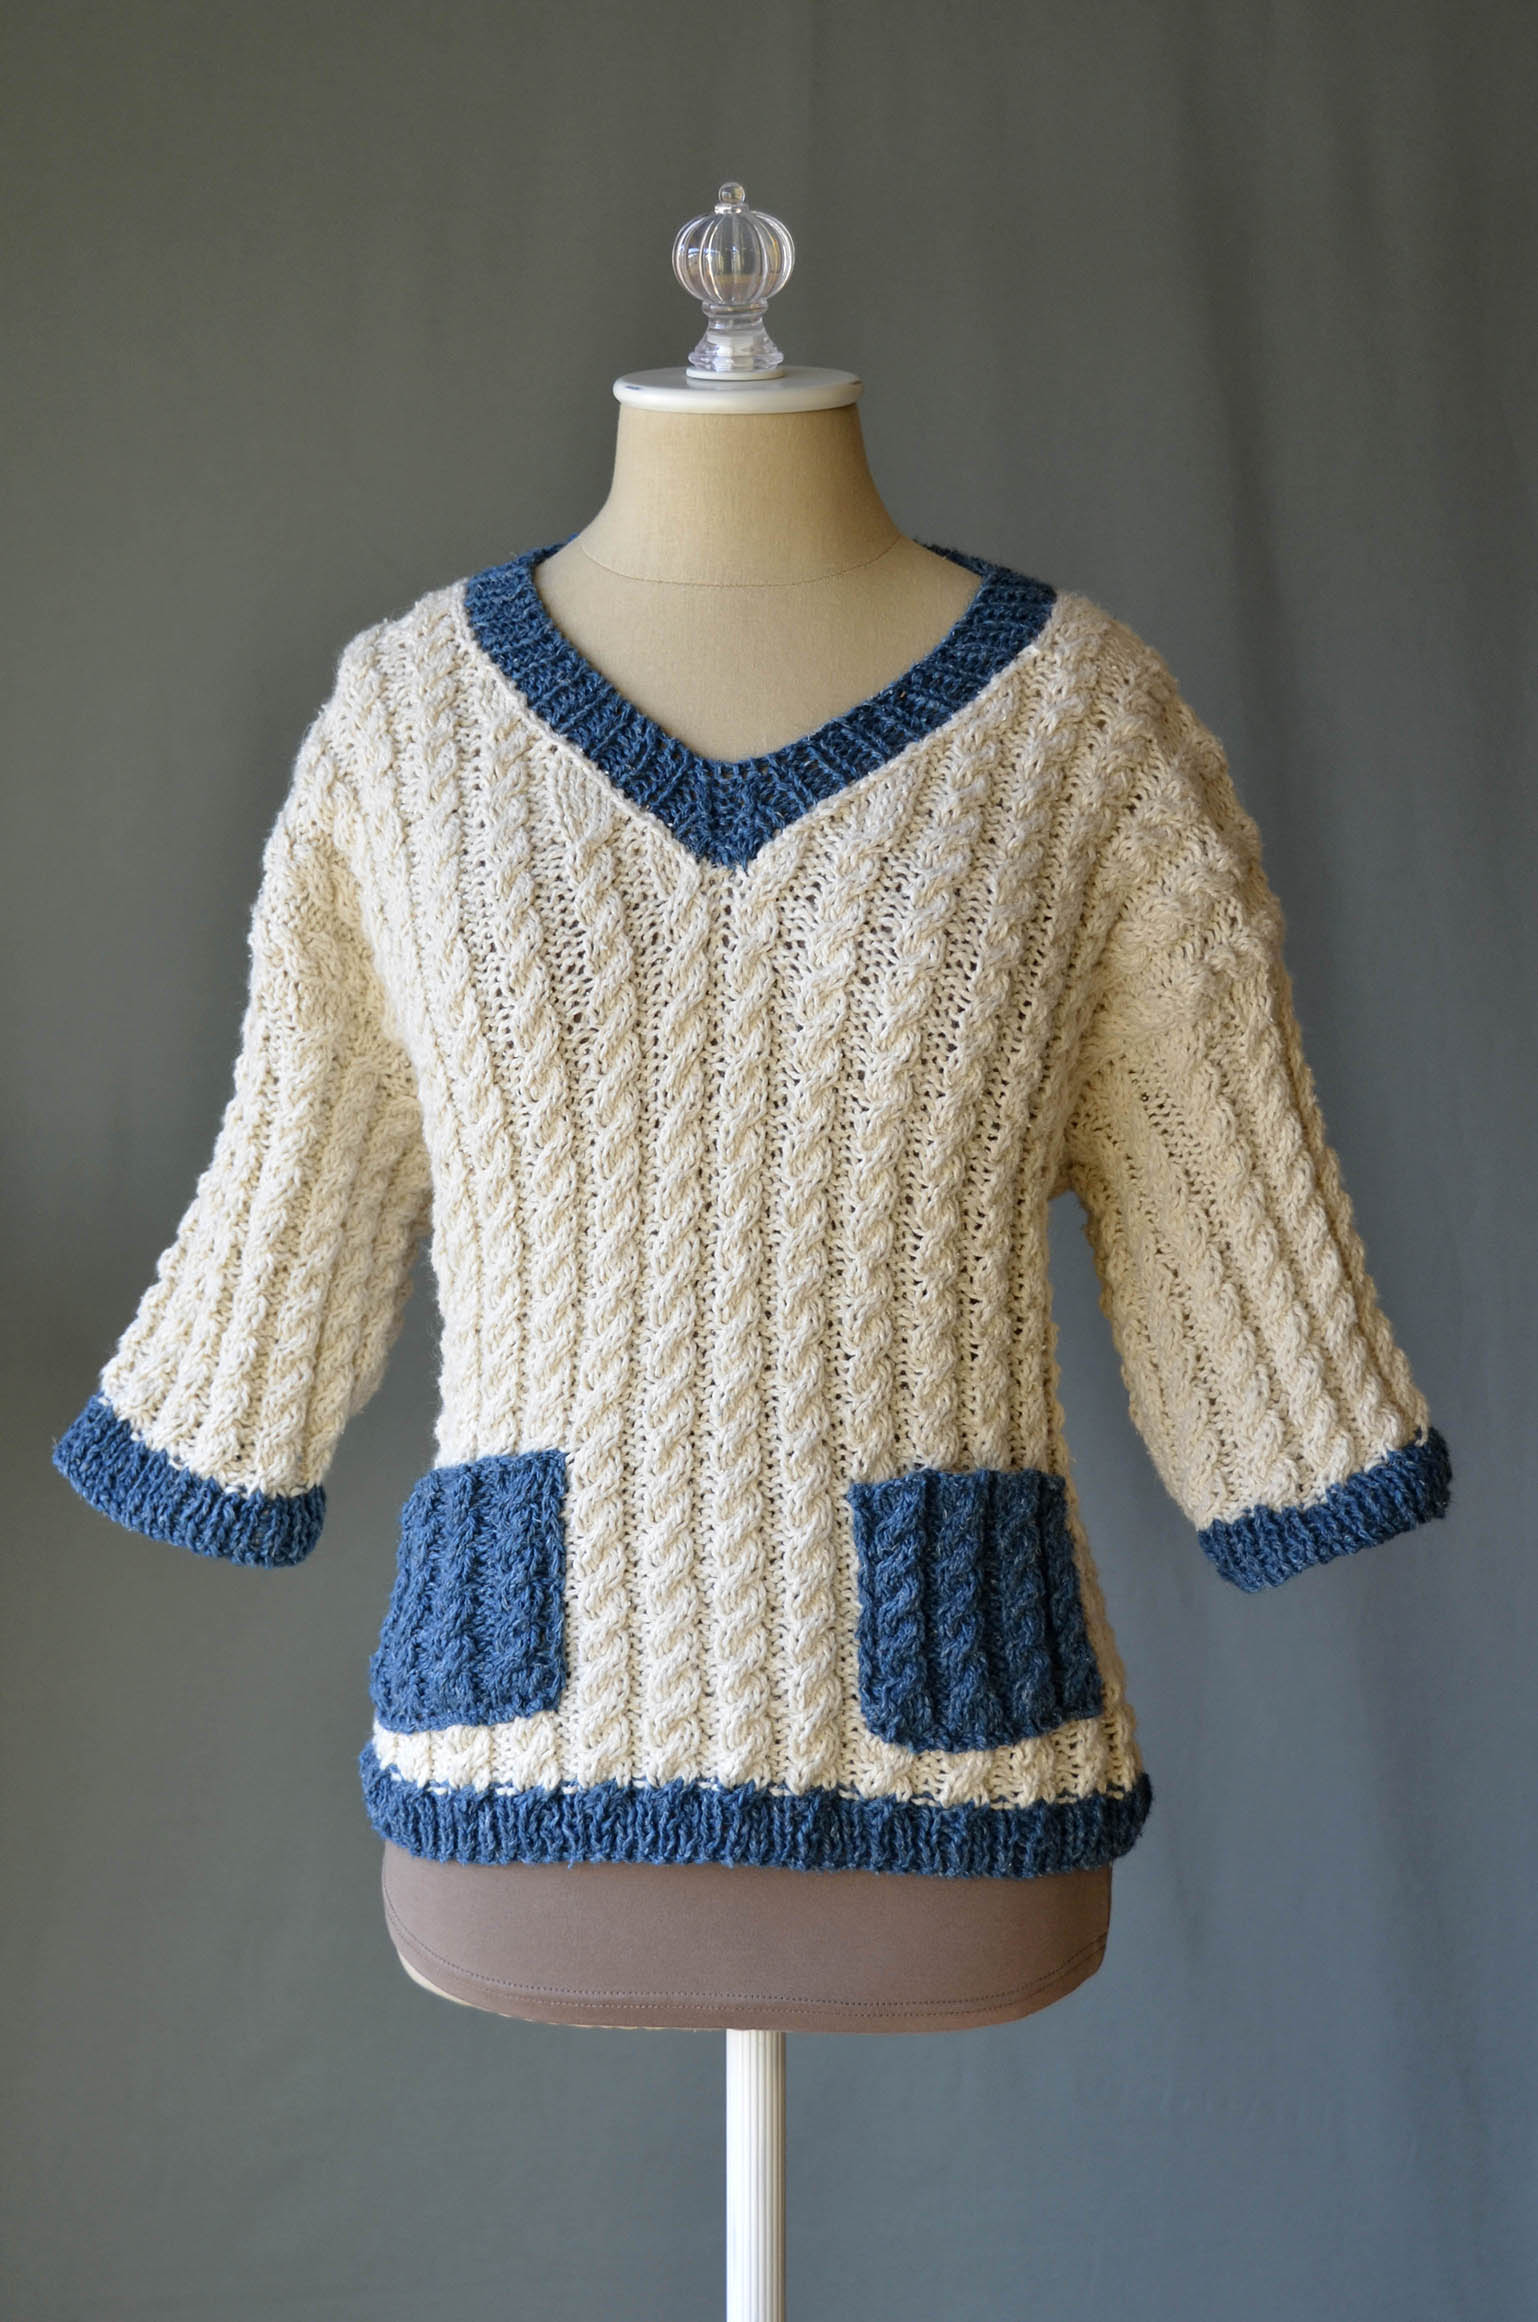 Varia Sweater in Llamalini_blog